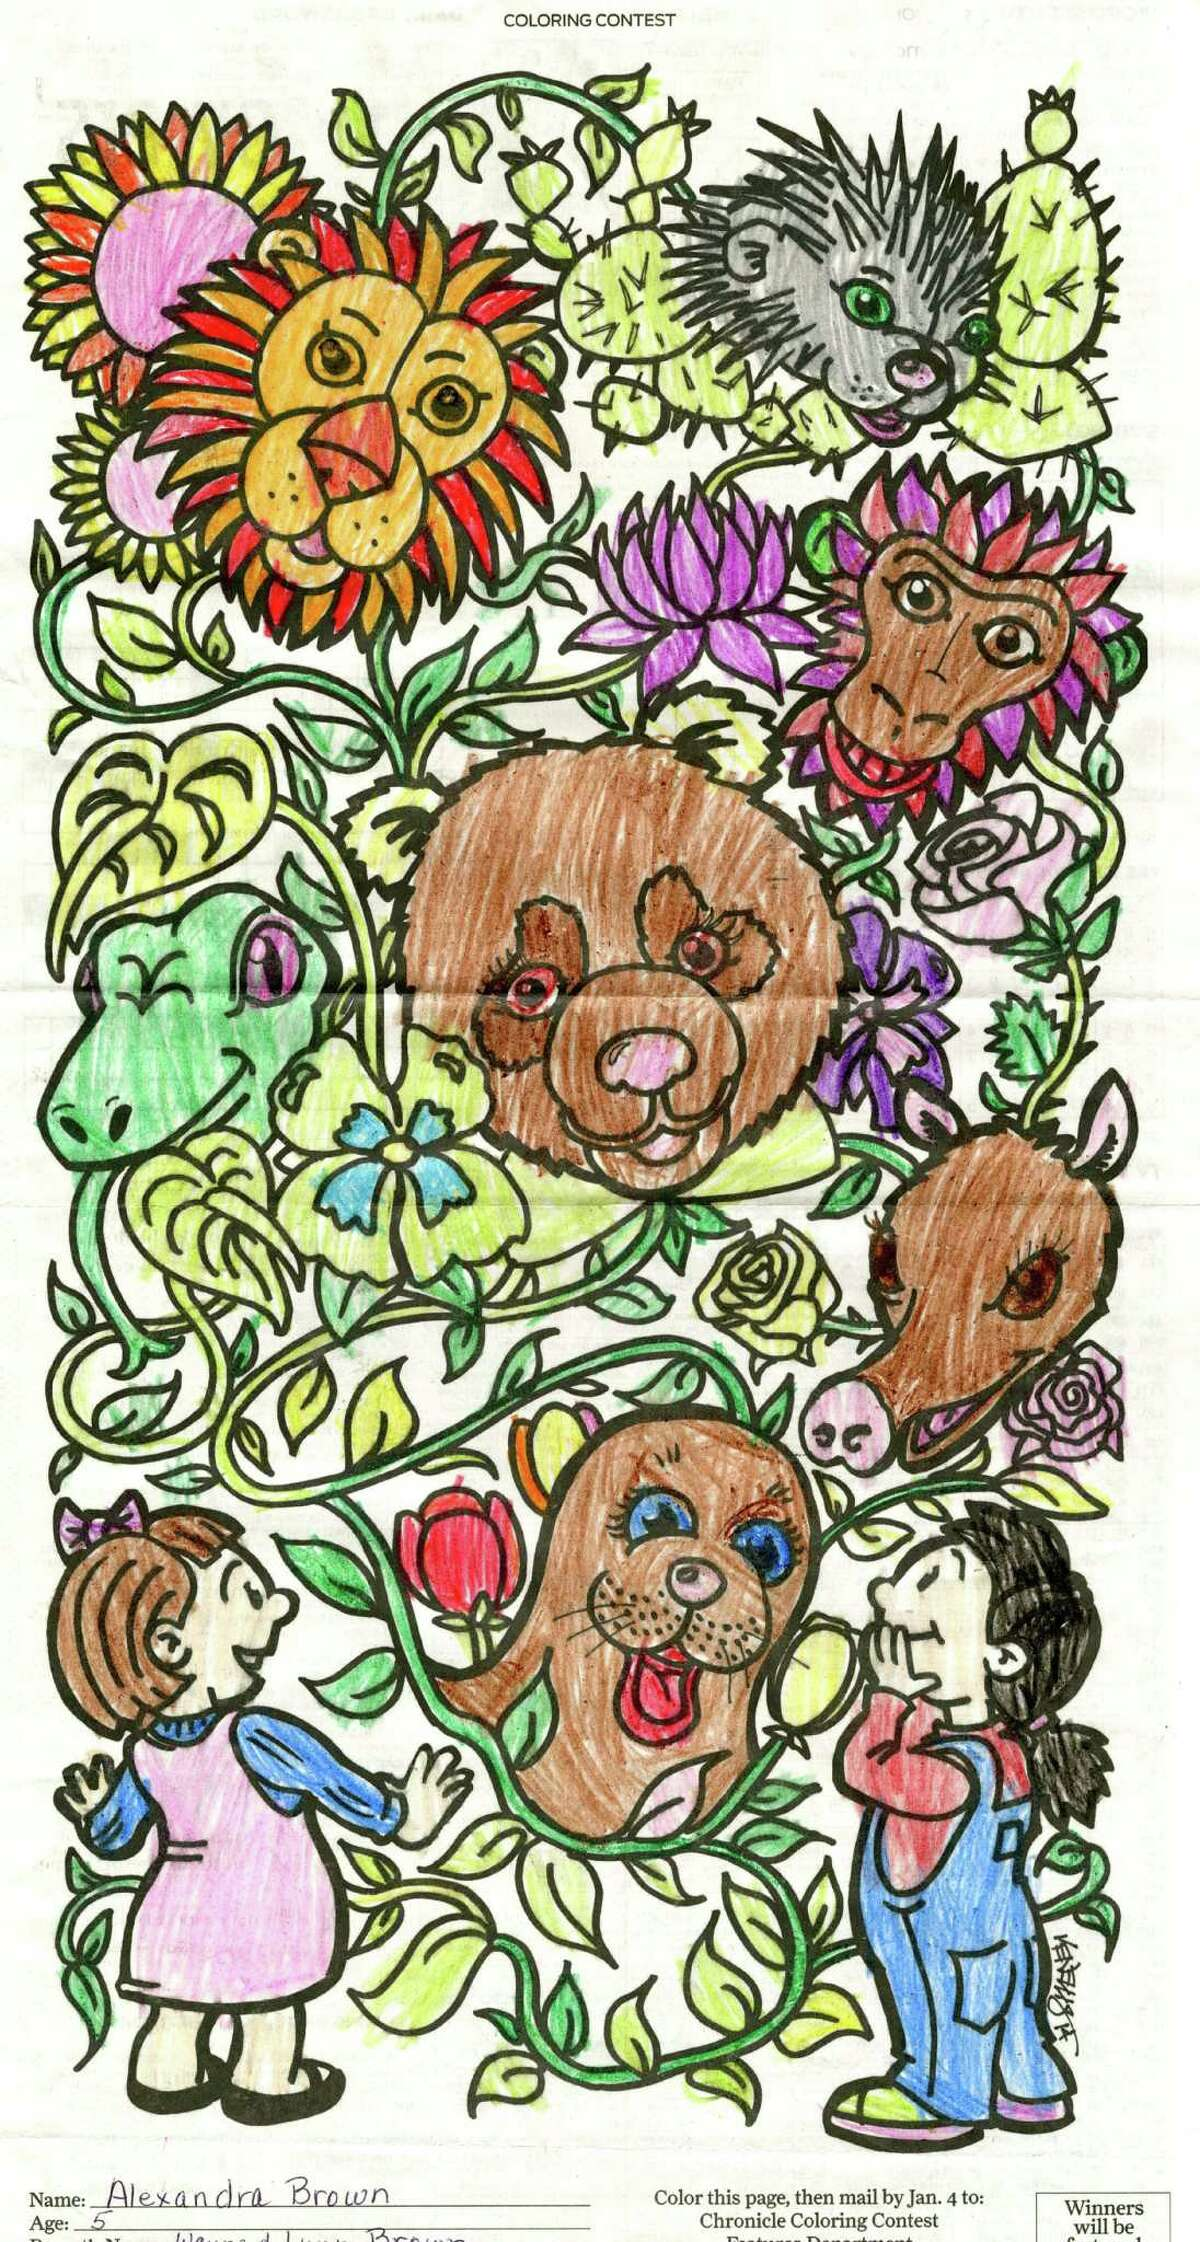 Chronicle coloring contest winner: Alexandra Brown, age 5